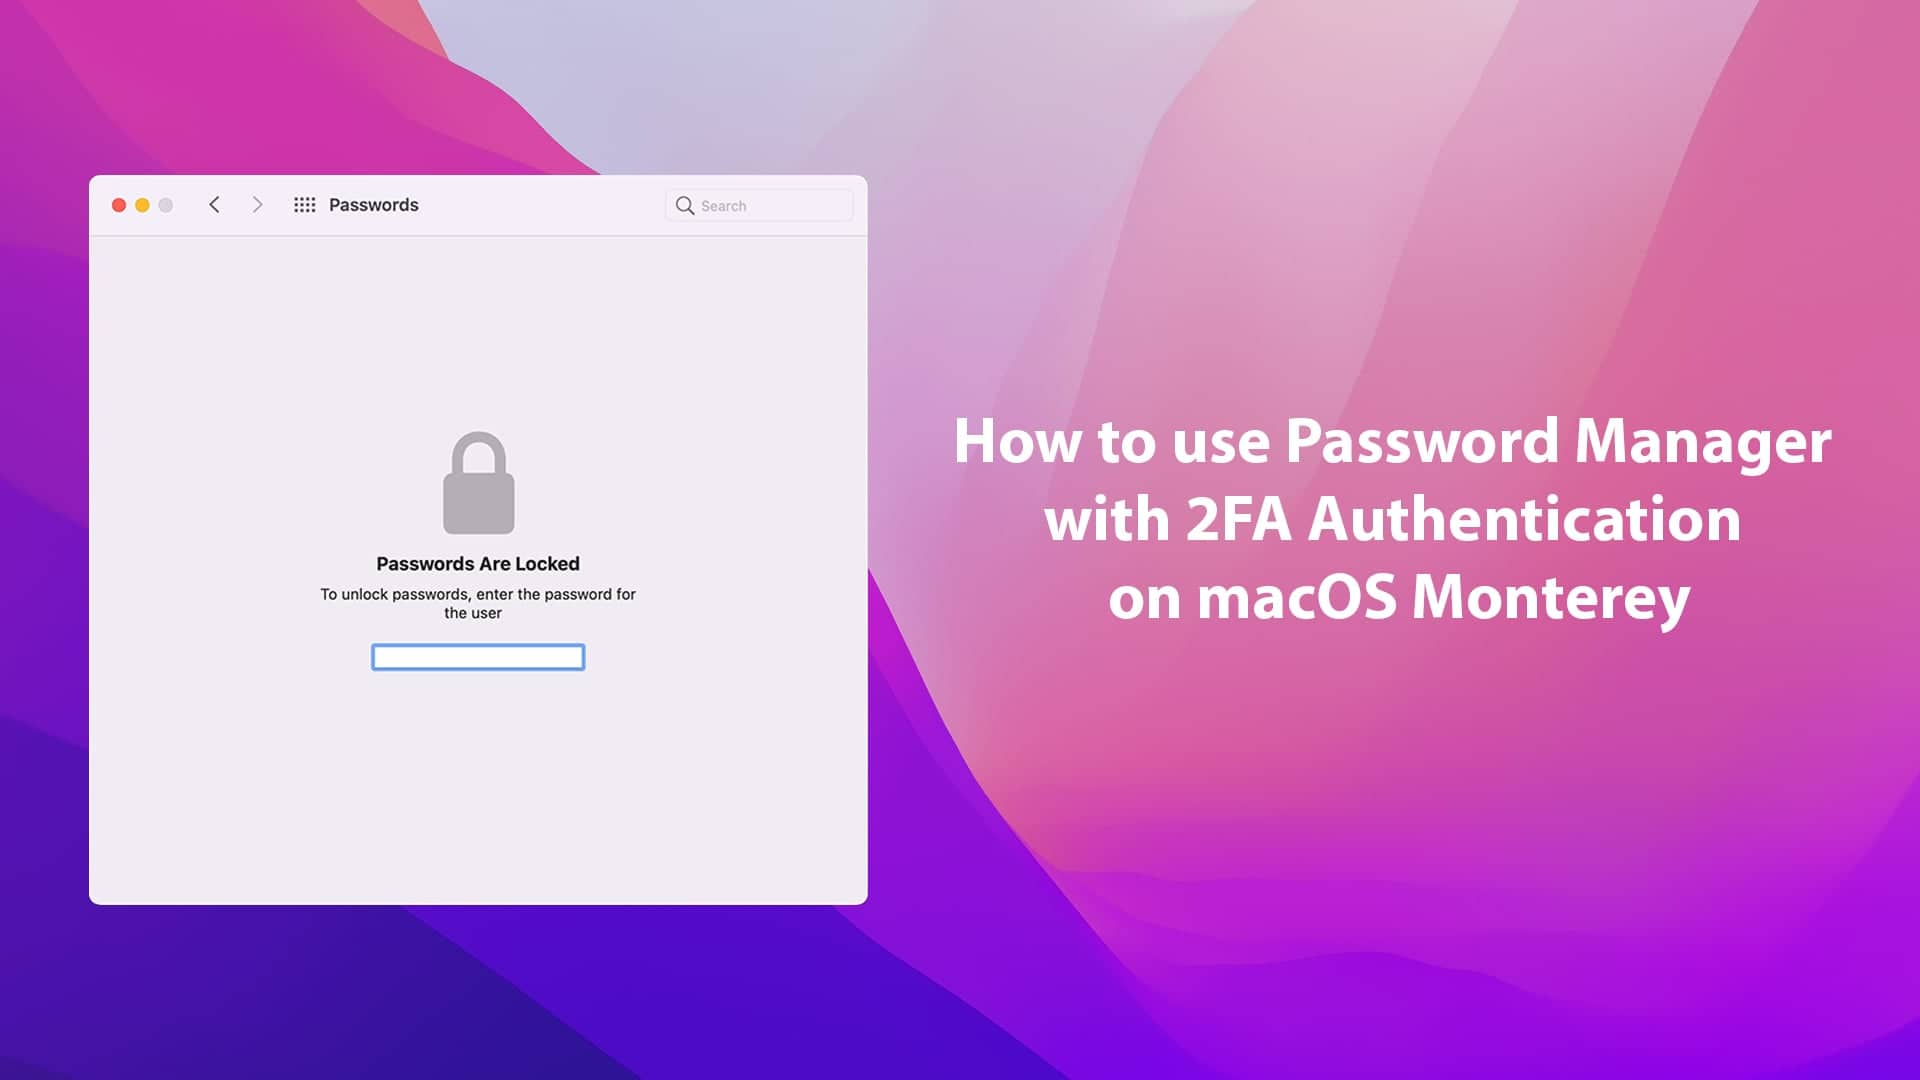 How to use Password Manager with 2FA Authentication on macOS Monterey